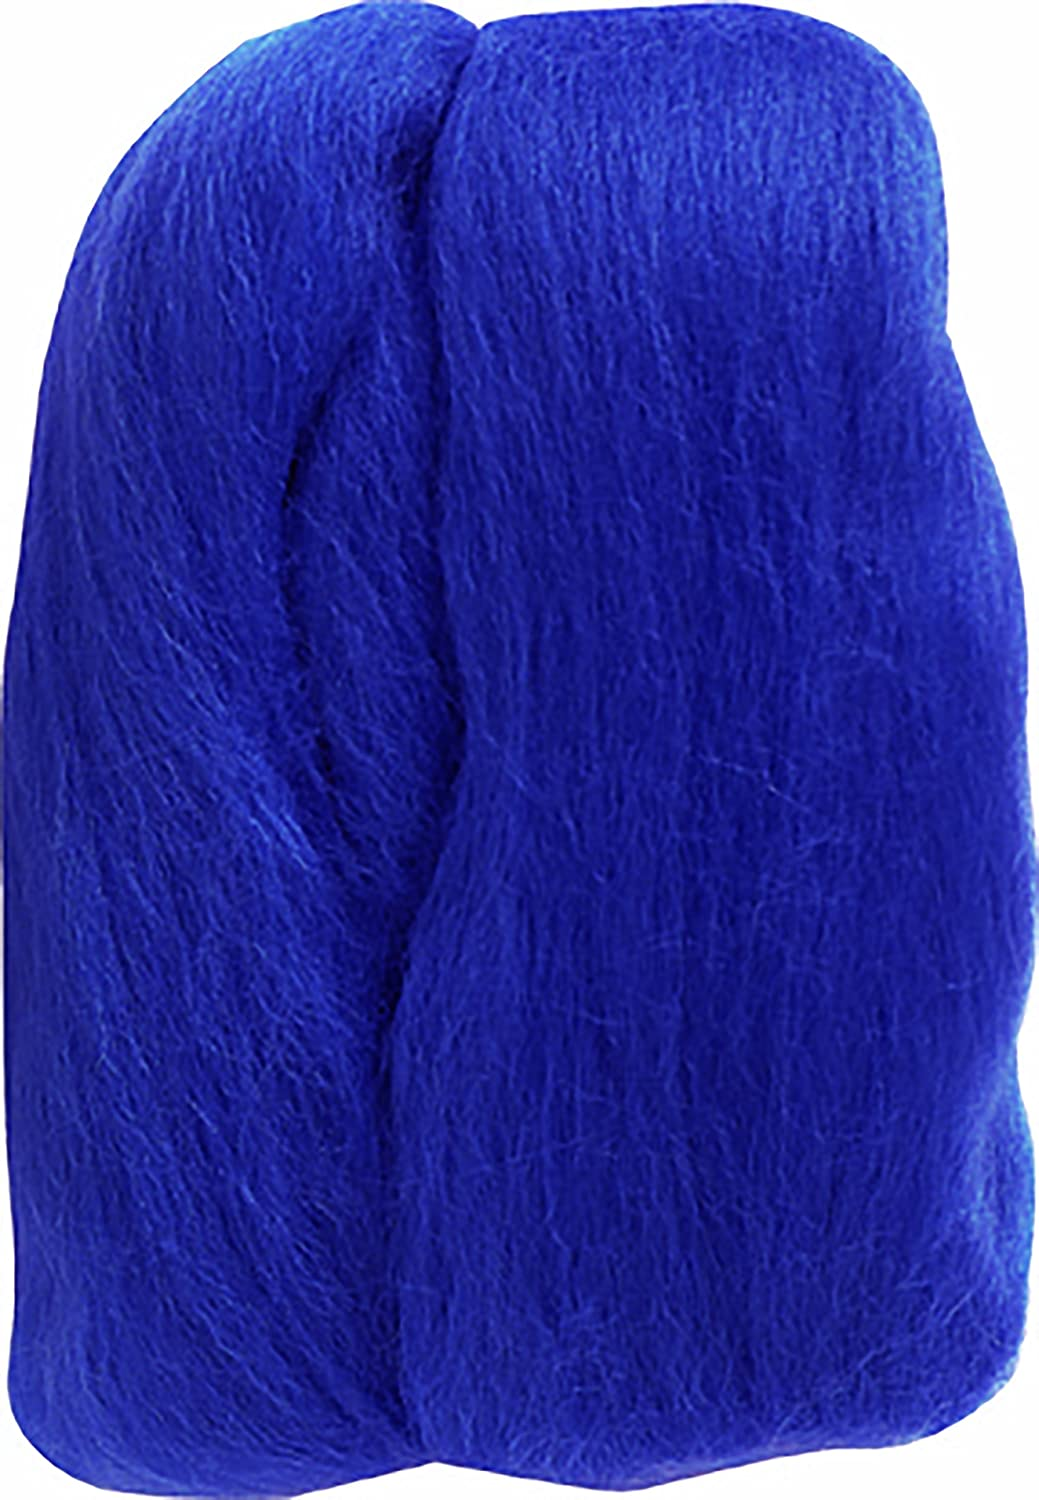 Blue Clover Natural Wool Roving